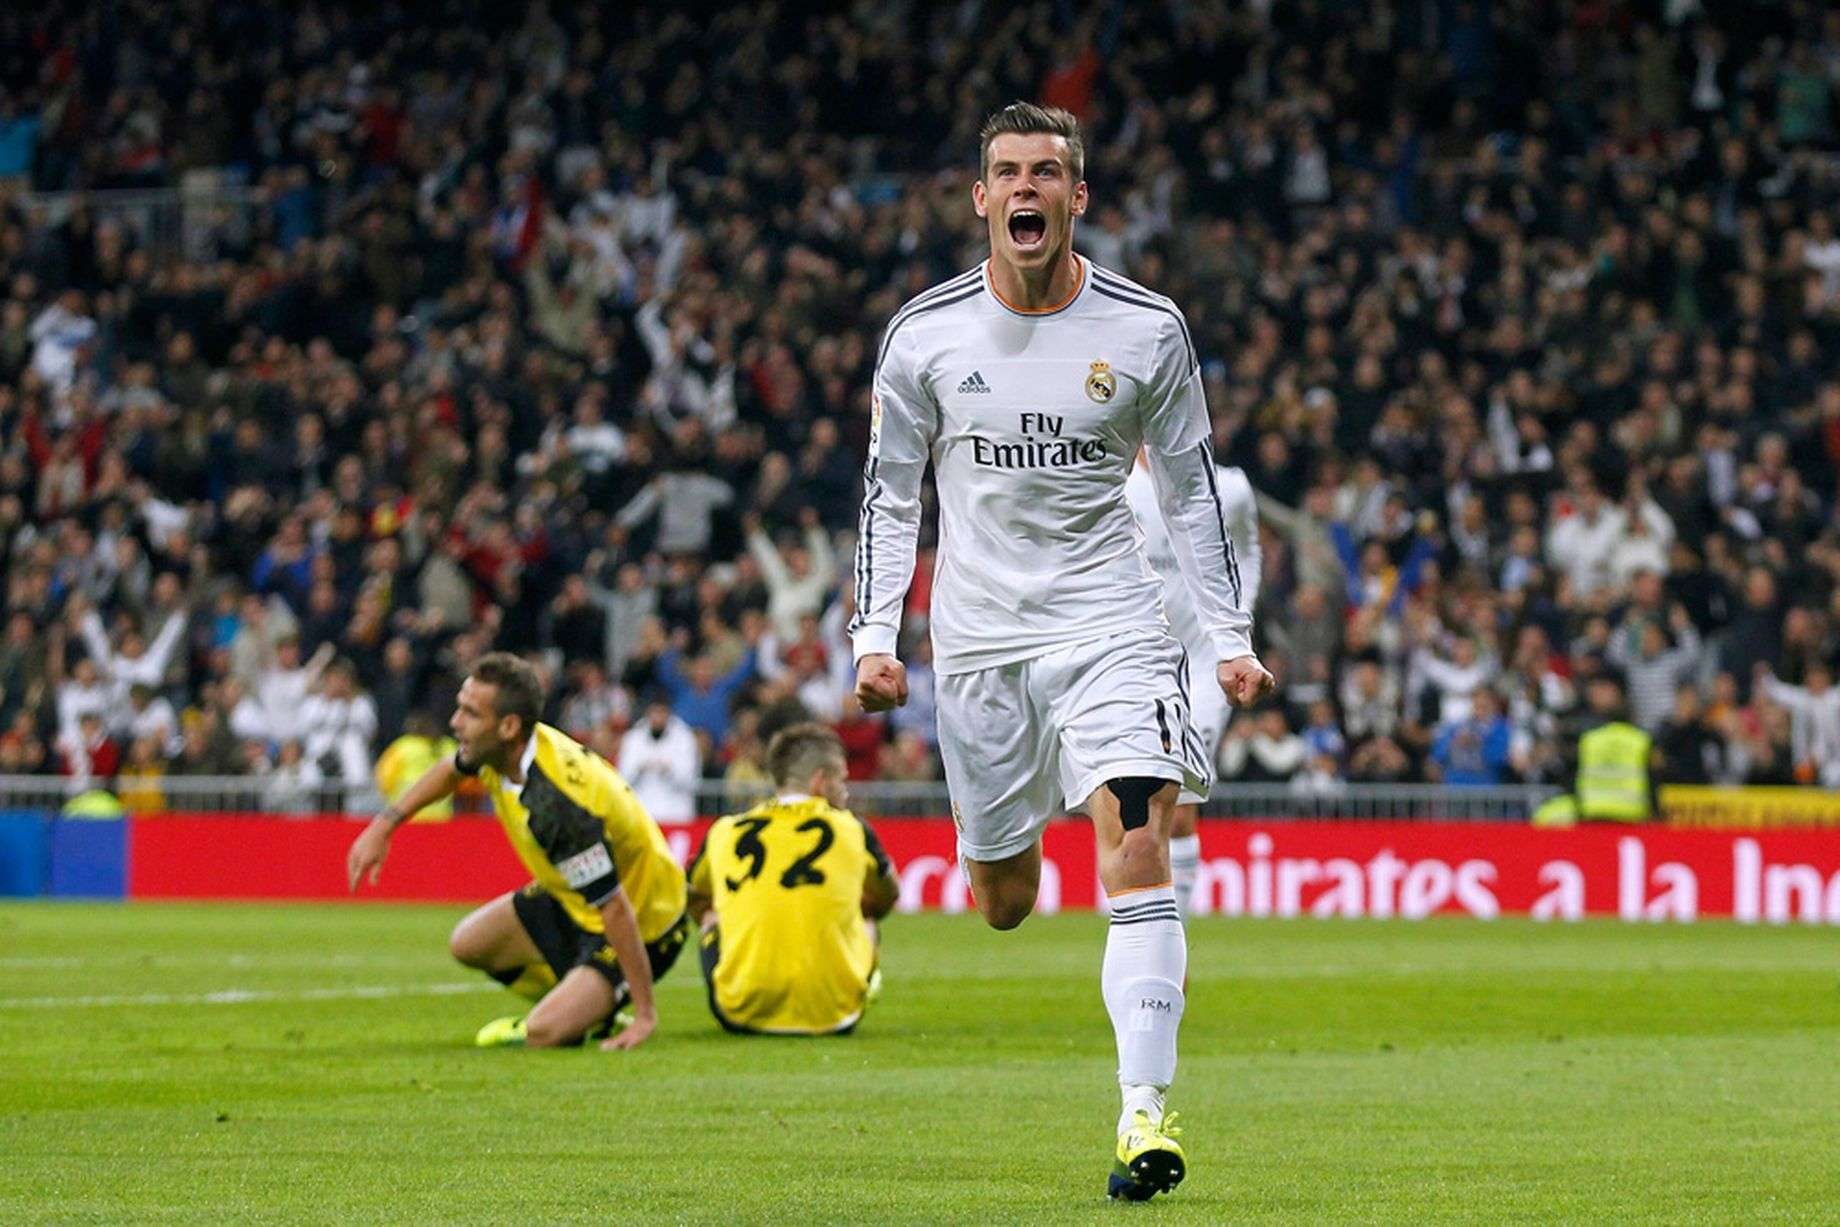 Gareth bale wallpapers 2016 hd wallpaper cave download free 50 gareth bale hd images and wallpapers voltagebd Images